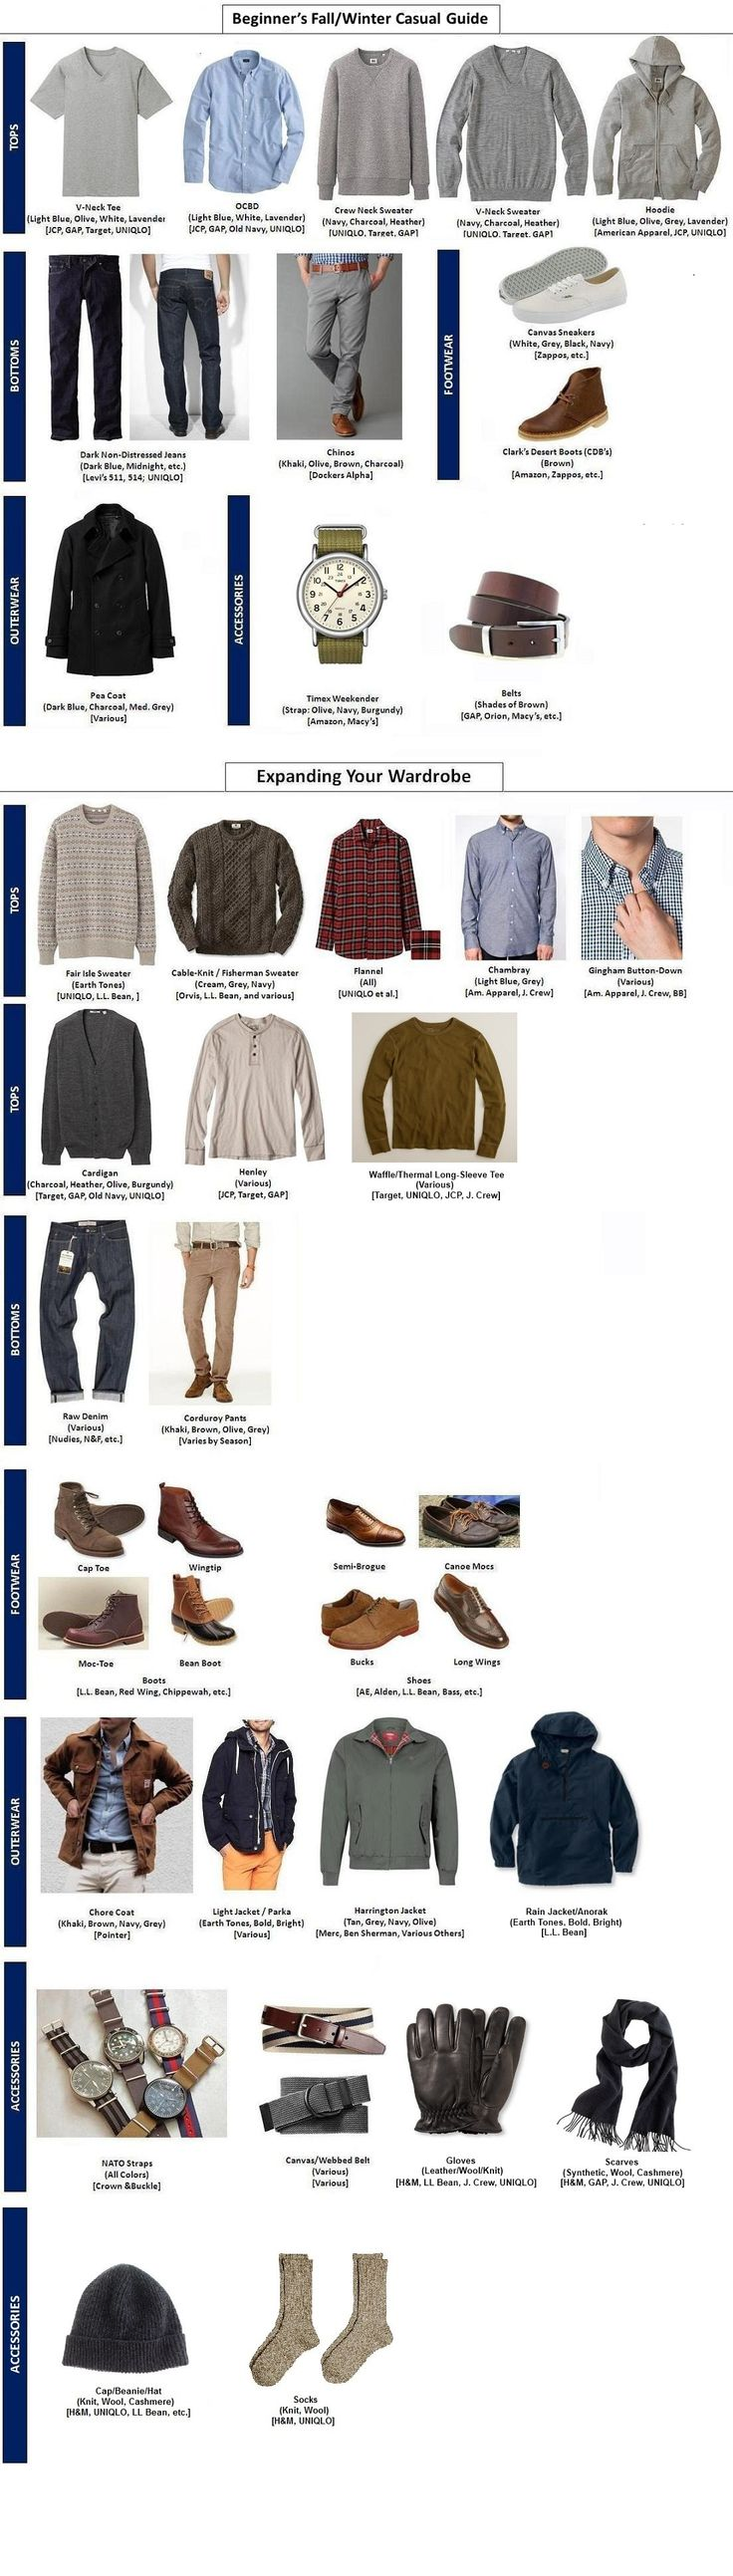 beginner's fall/winter guide by allmoose